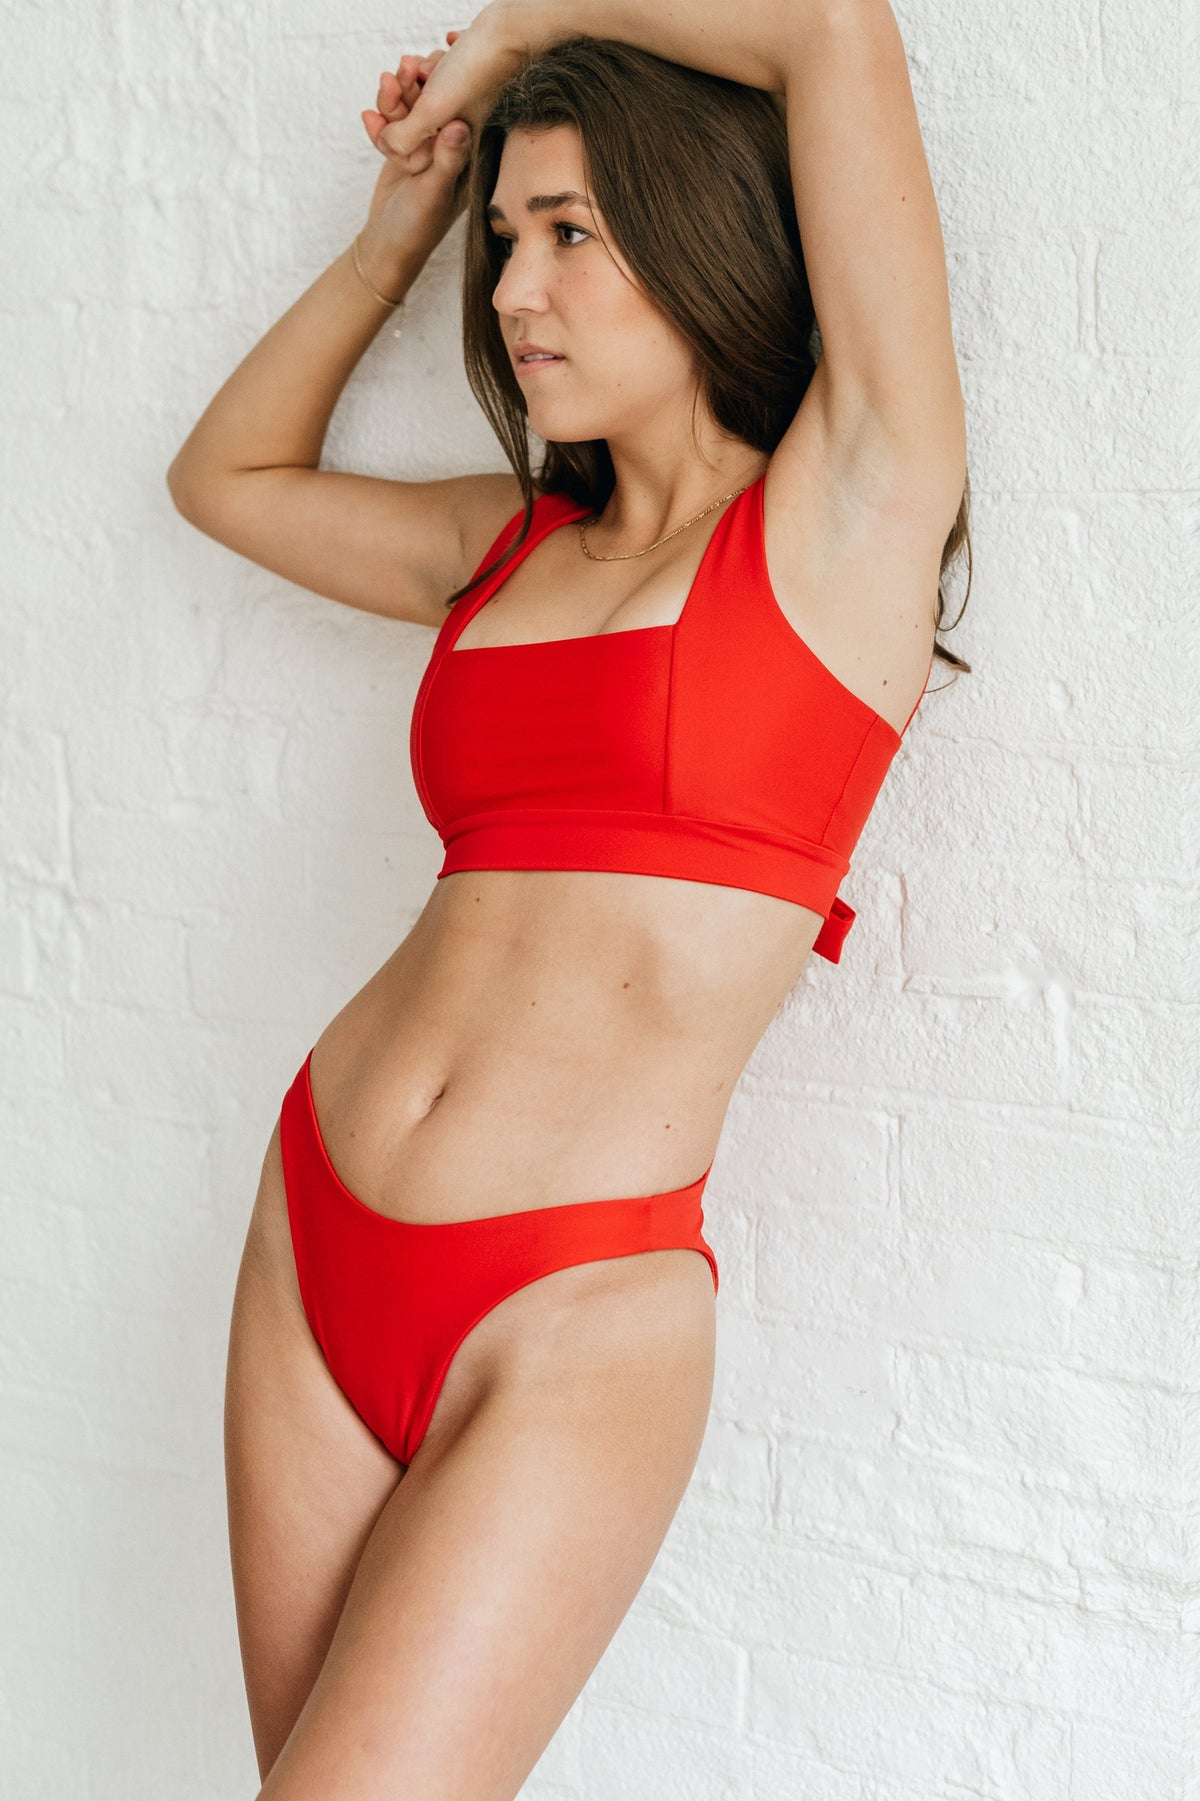 A woman leaning against a white wall with her arms above her head wearing bright red high cut bikini bottoms and a matching bright red bikini top with a square neckline.